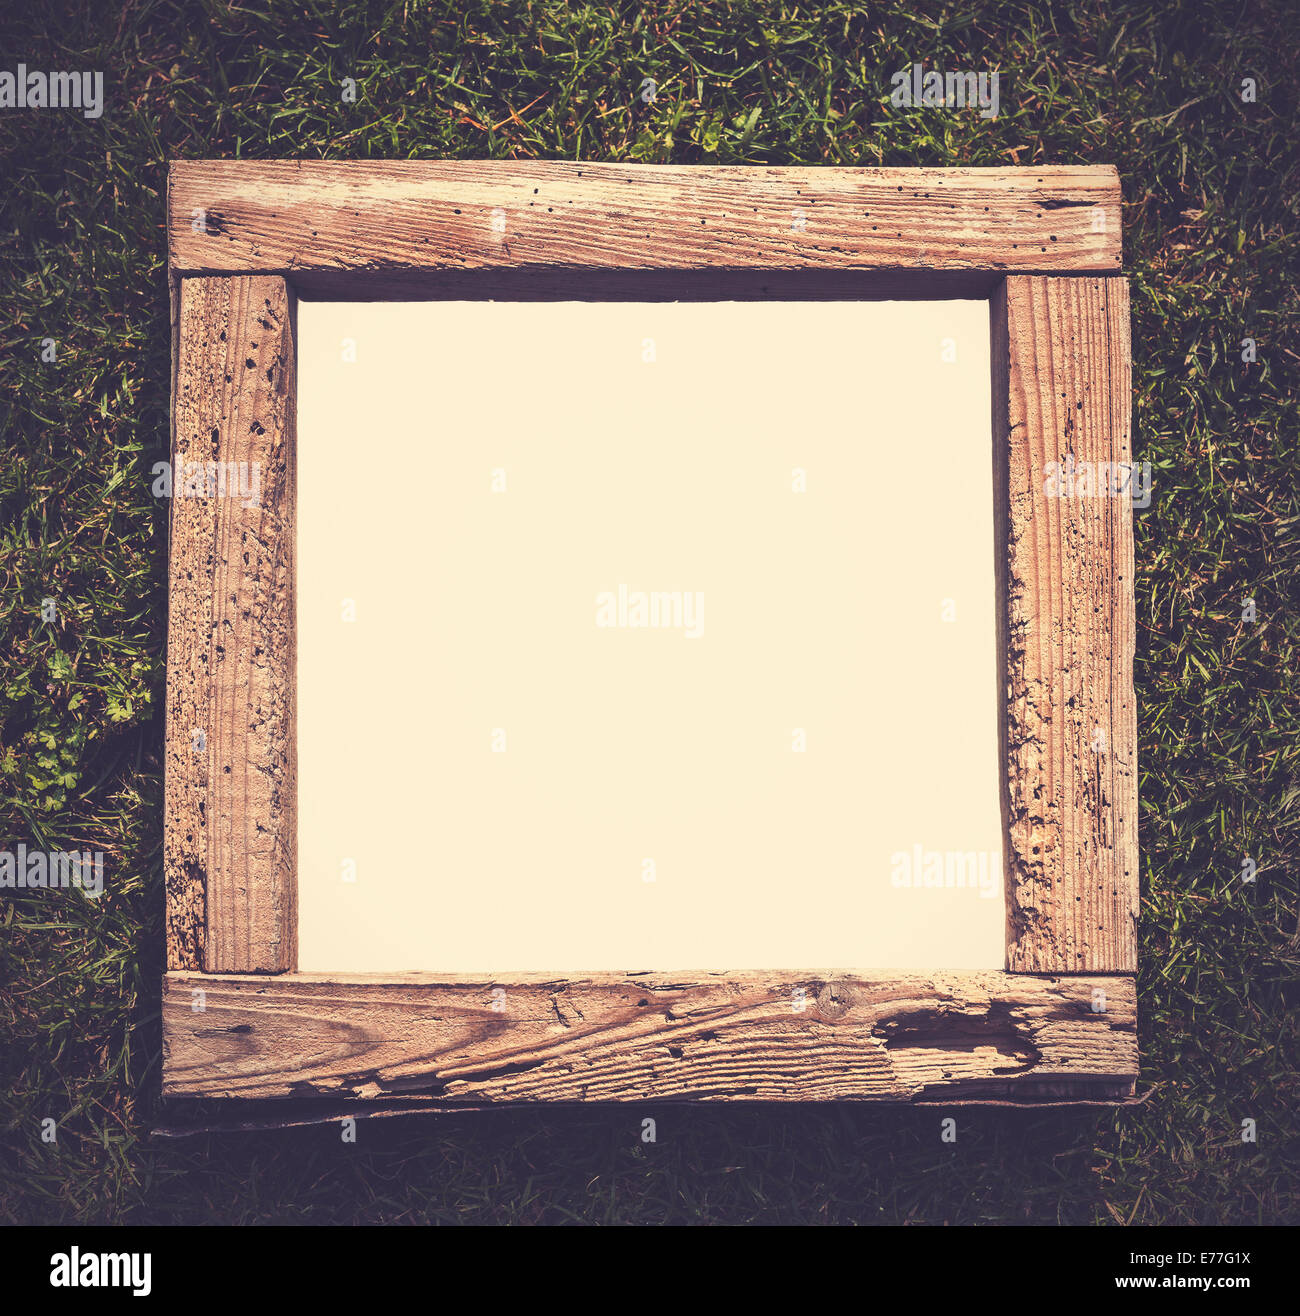 Vintage old grunge wood frame on grass, empty space for text. - Stock Image